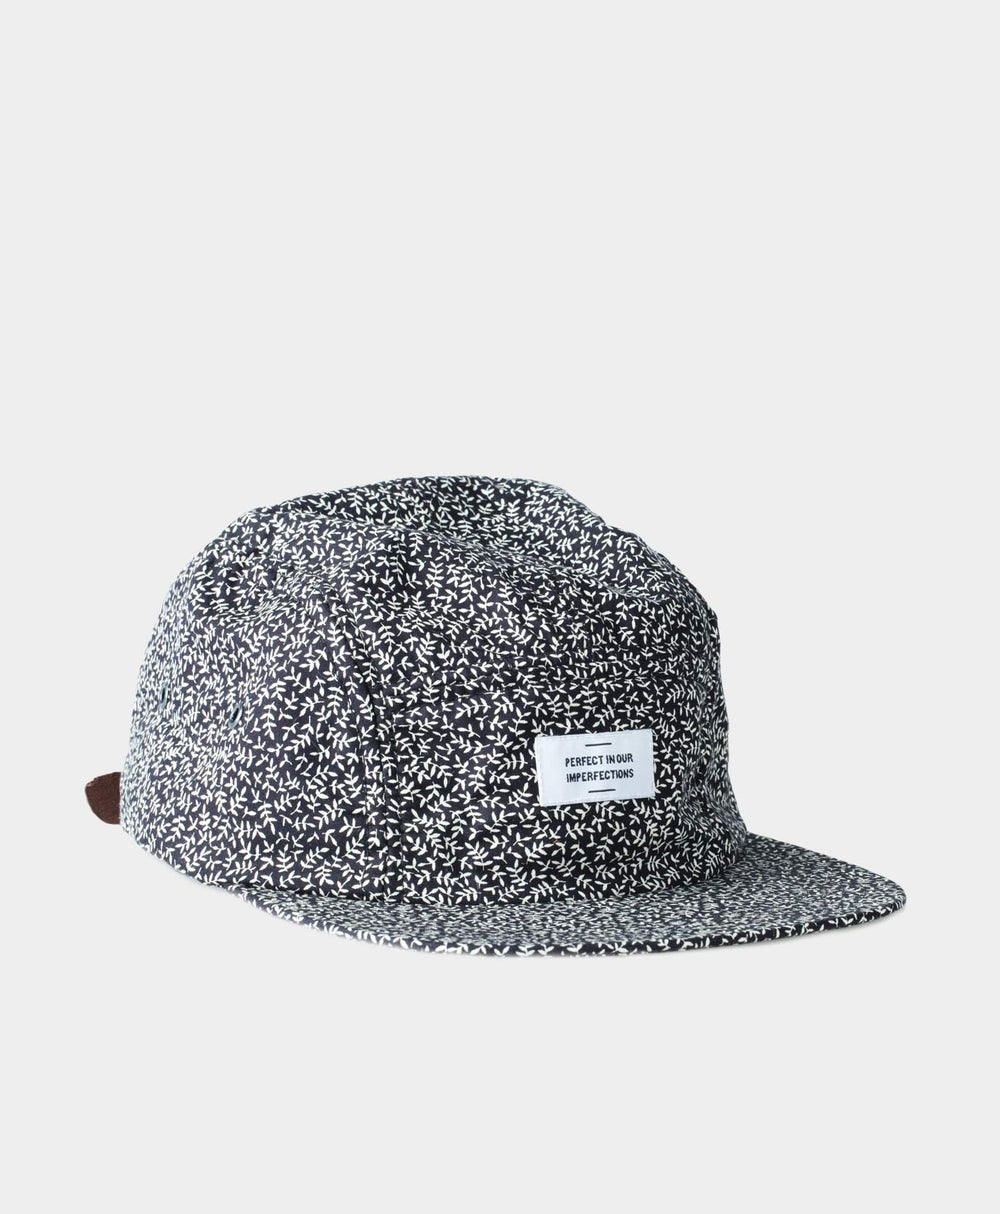 Image of The Leaves Cap